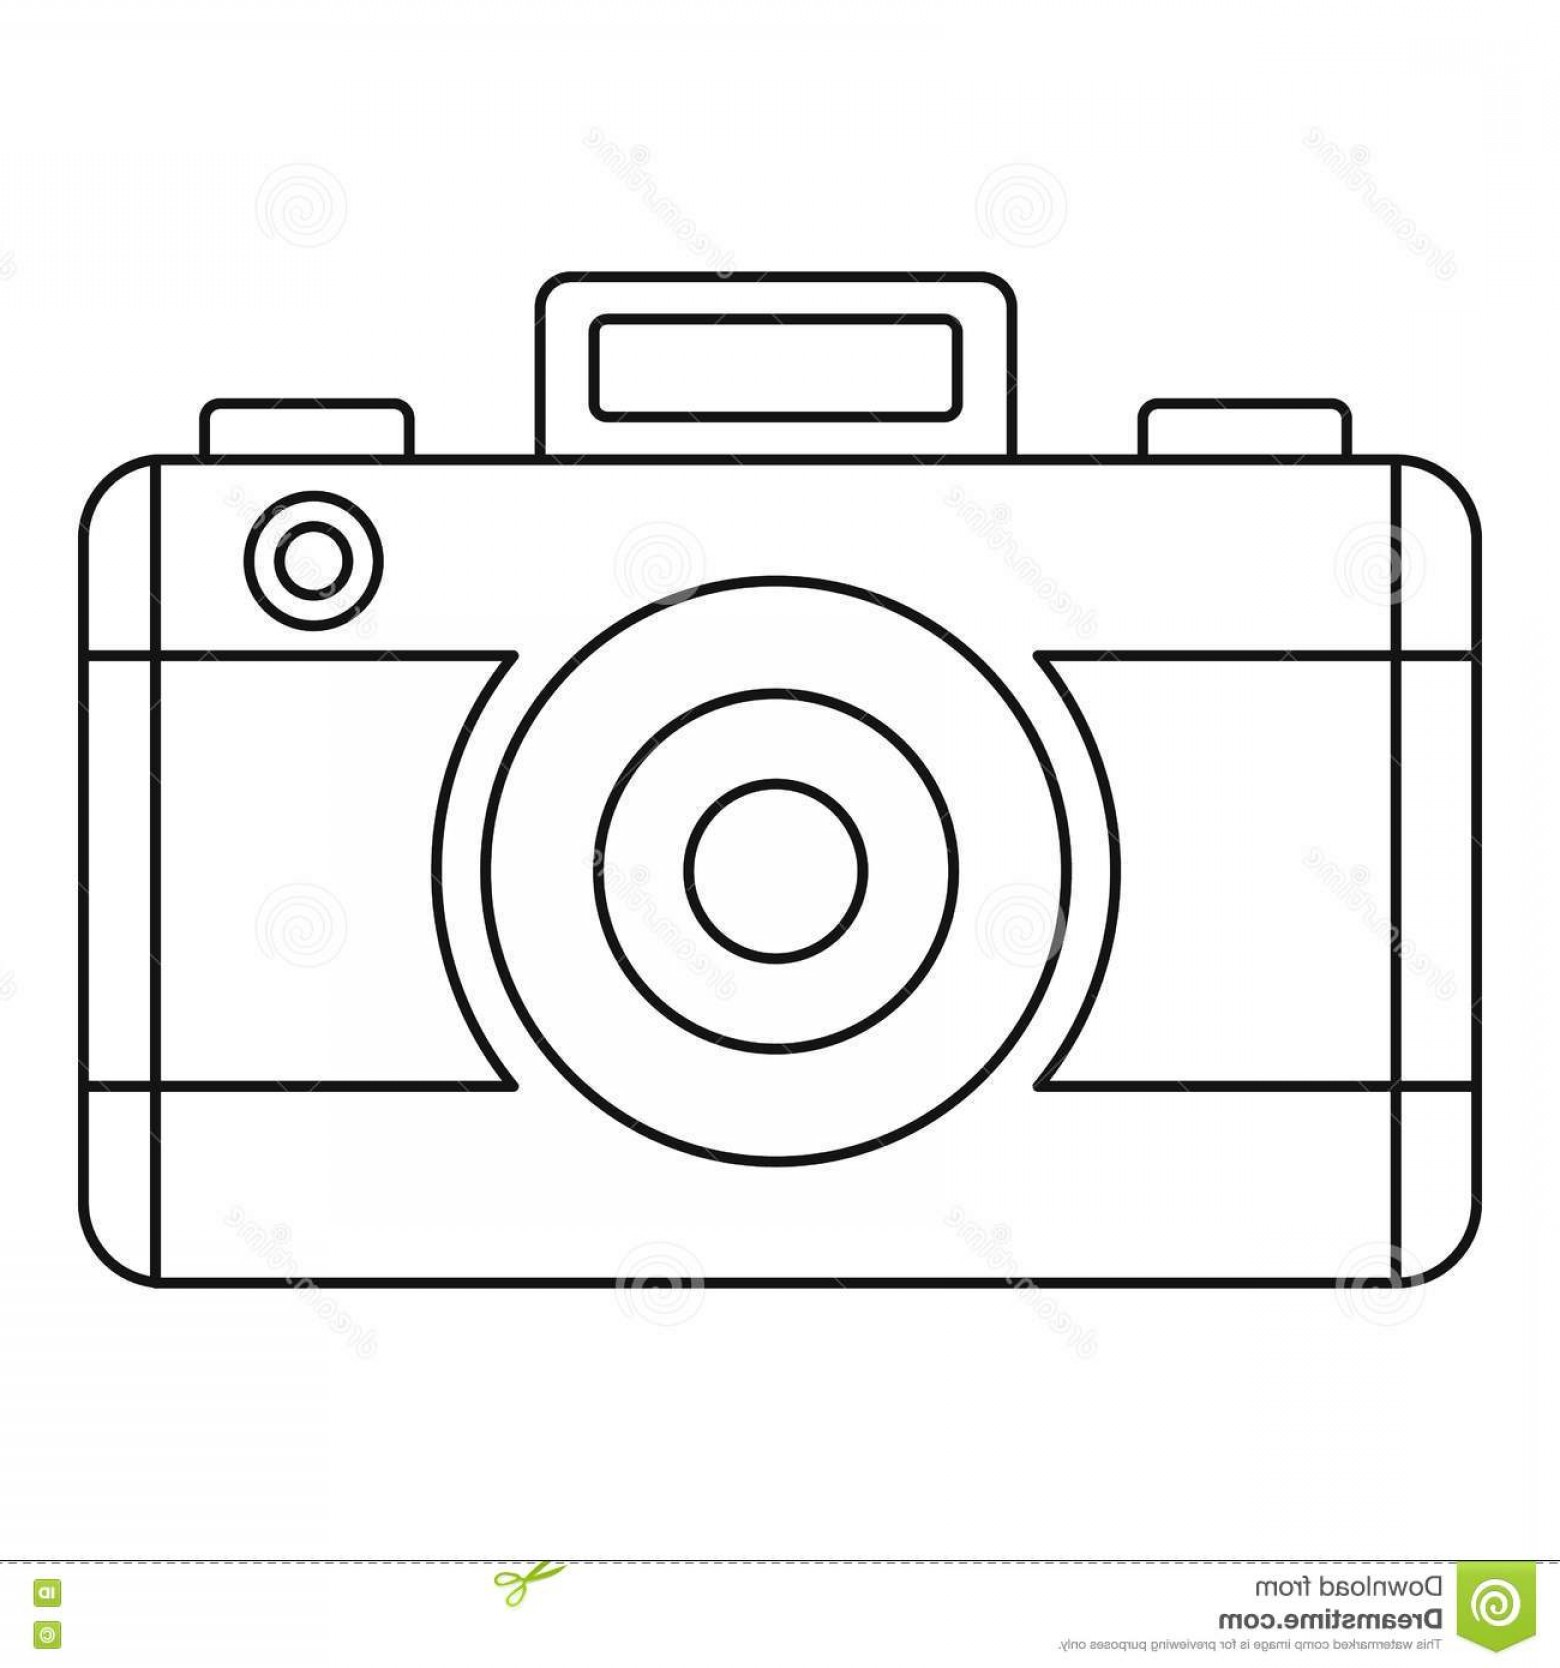 Camera Outline Vector Graphic: Stock Illustration Photo Camera Icon Outline Style Illustration Vector Web Image